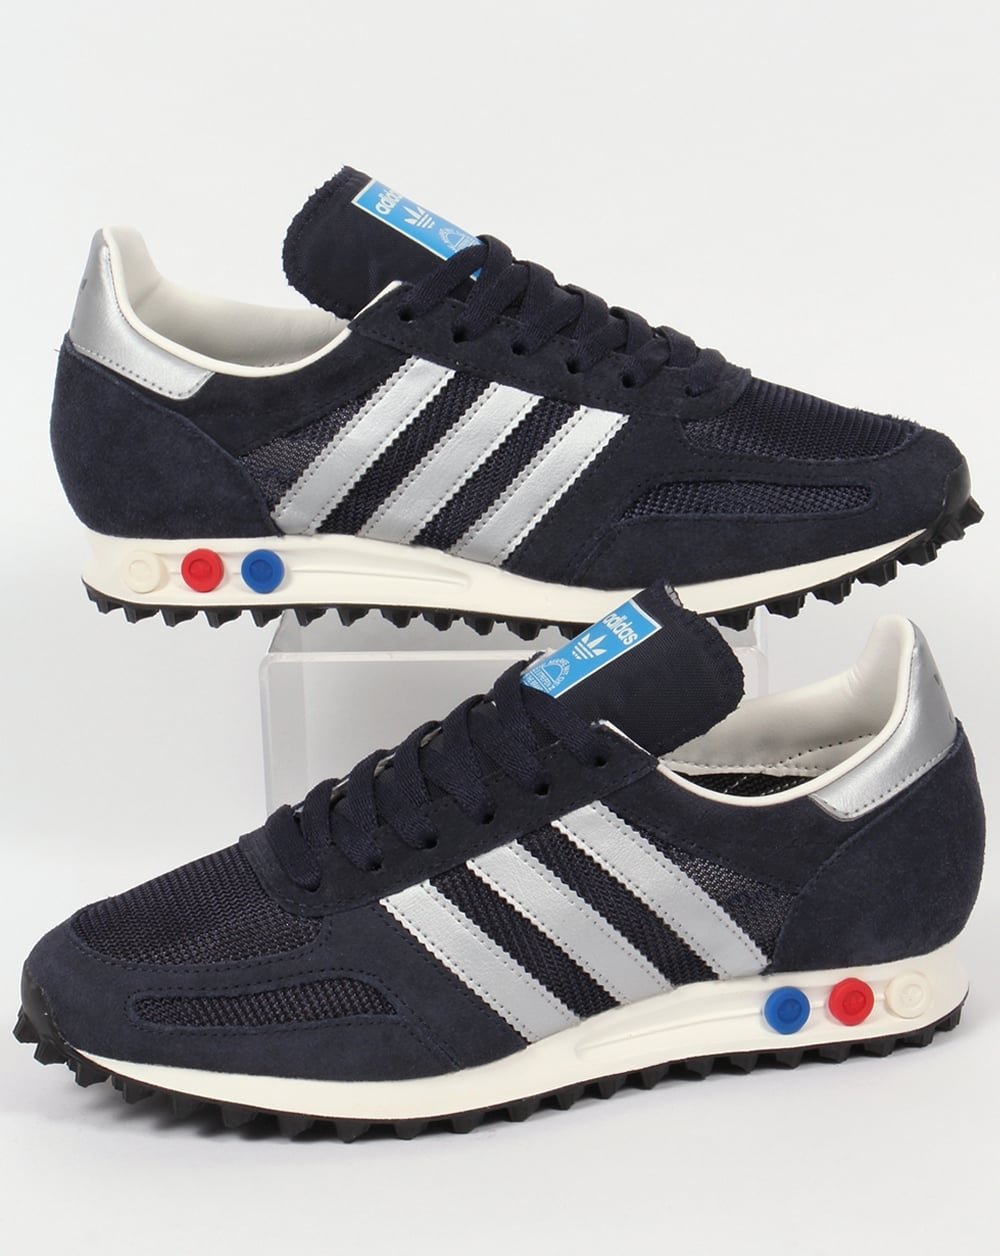 adidas la trainer og trainers navy silver shoes original runner mens. Black Bedroom Furniture Sets. Home Design Ideas